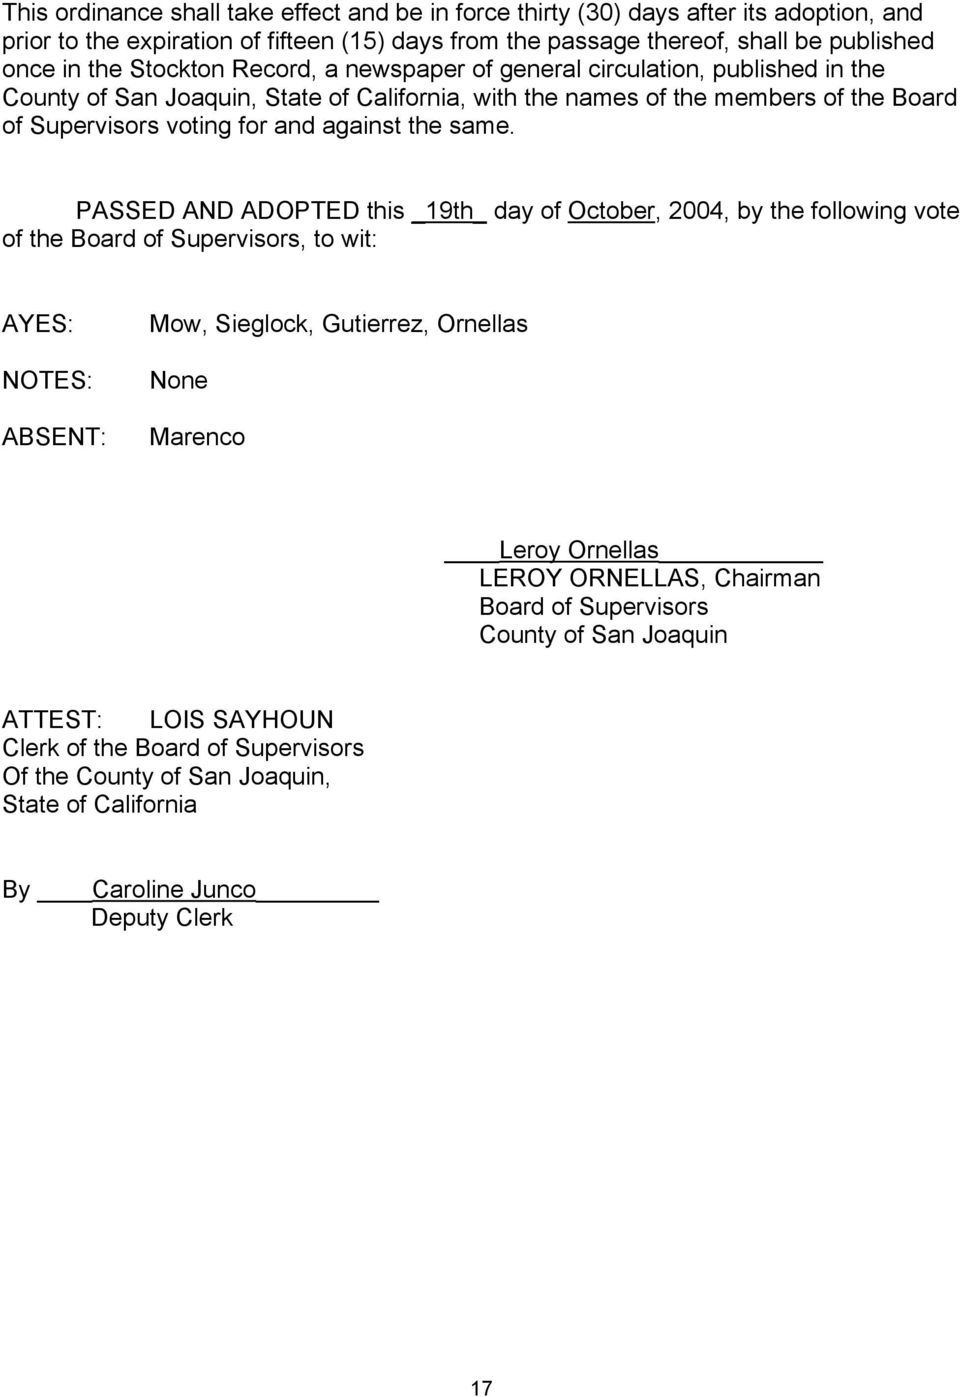 same. PASSED AND ADOPTED this _19th_ day of October, 2004, by the following vote of the Board of Supervisors, to wit: AYES: NOTES: ABSENT: Mow, Sieglock, Gutierrez, Ornellas None Marenco Leroy